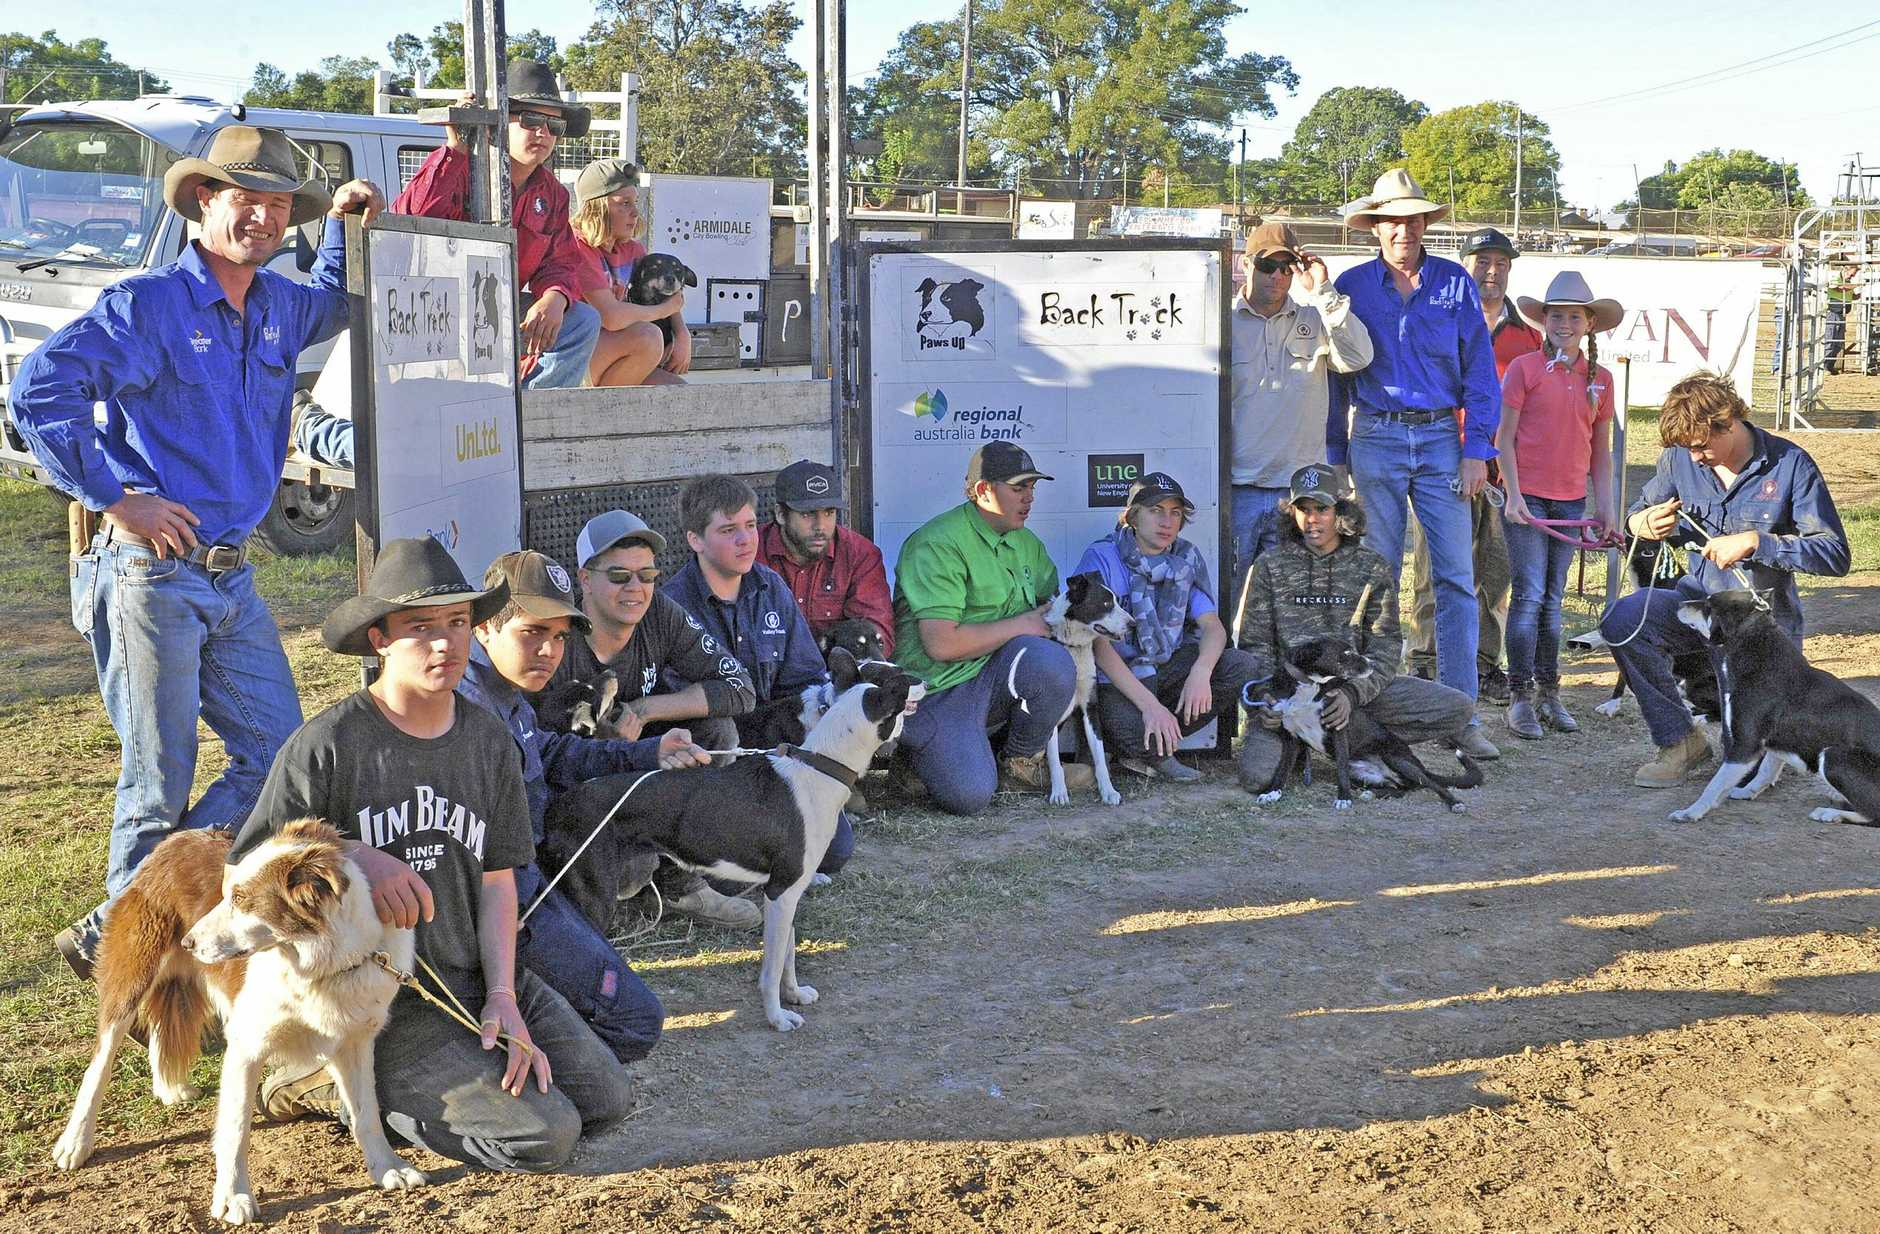 WINNERS: The Valley Track and Back Track teams came away with ribbons in the Junior Bush Dog Trials